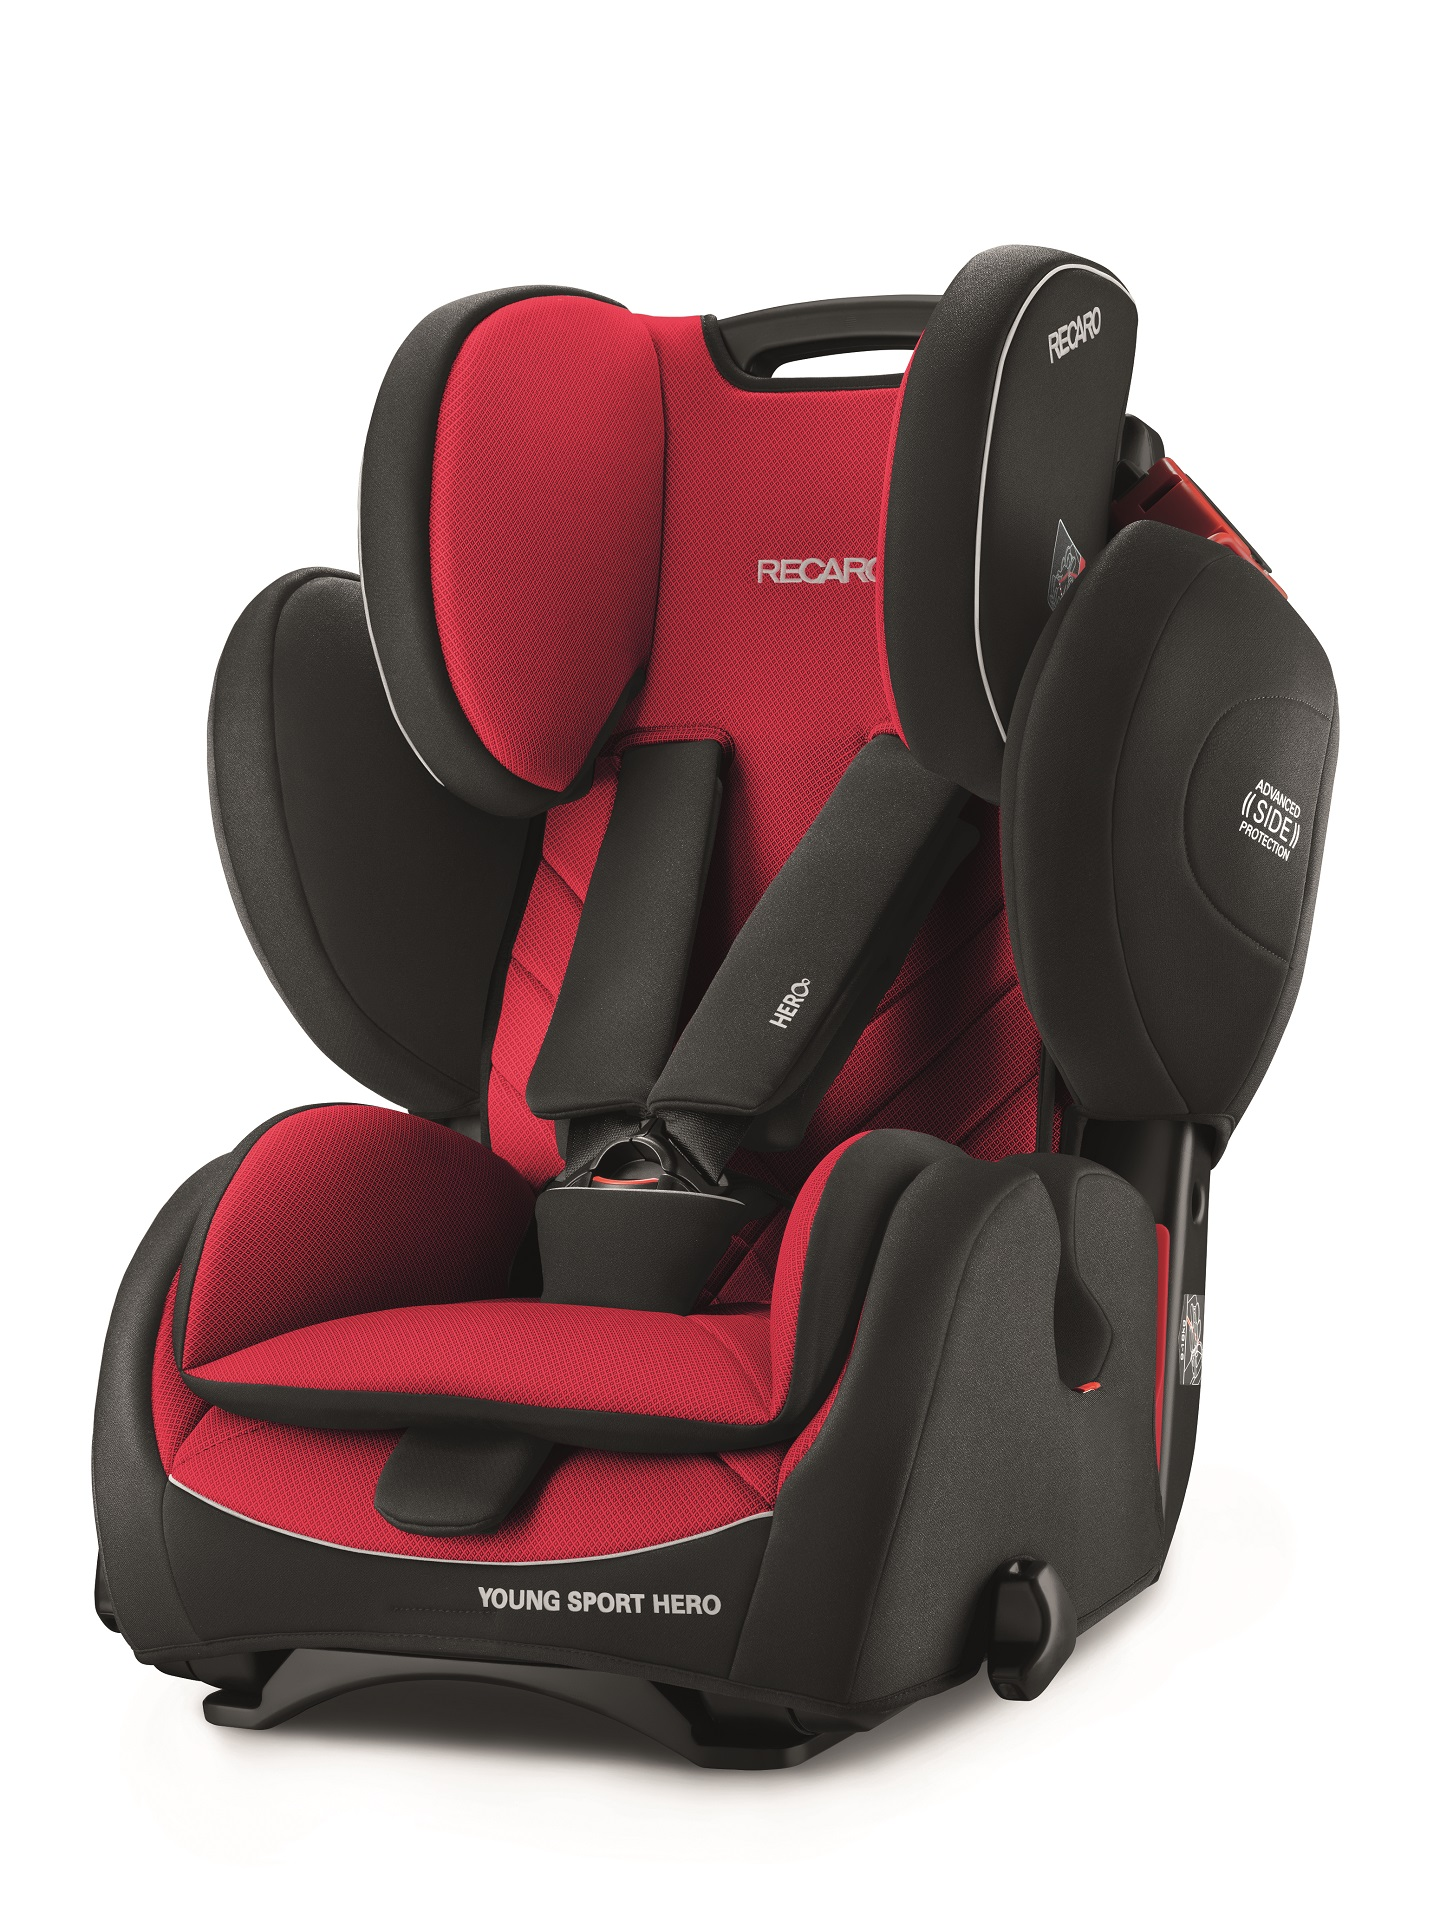 recaro child car seat young sport hero 2018 racing red. Black Bedroom Furniture Sets. Home Design Ideas